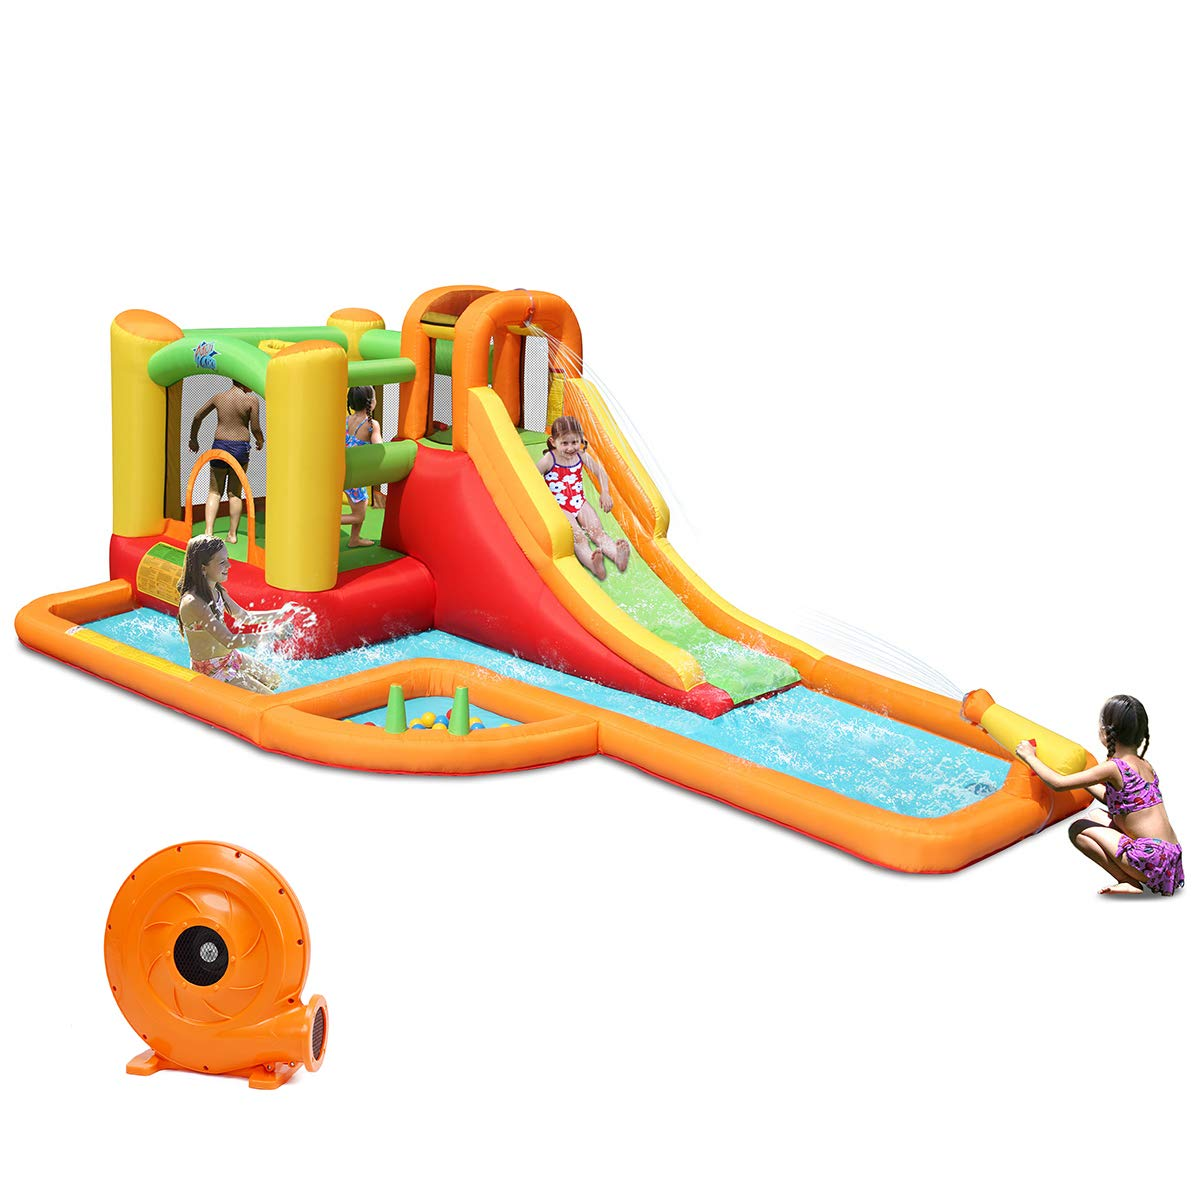 Costzon Inflatable Slide Bouncer, Bounce House with Climbing Wall, Jump Area, Basketball Hoop, Splash Pool, Including Oxford Carry Bag, Repairing Kit, Stakes, Ocean Balls, Water Pipe, 780W Air Blower